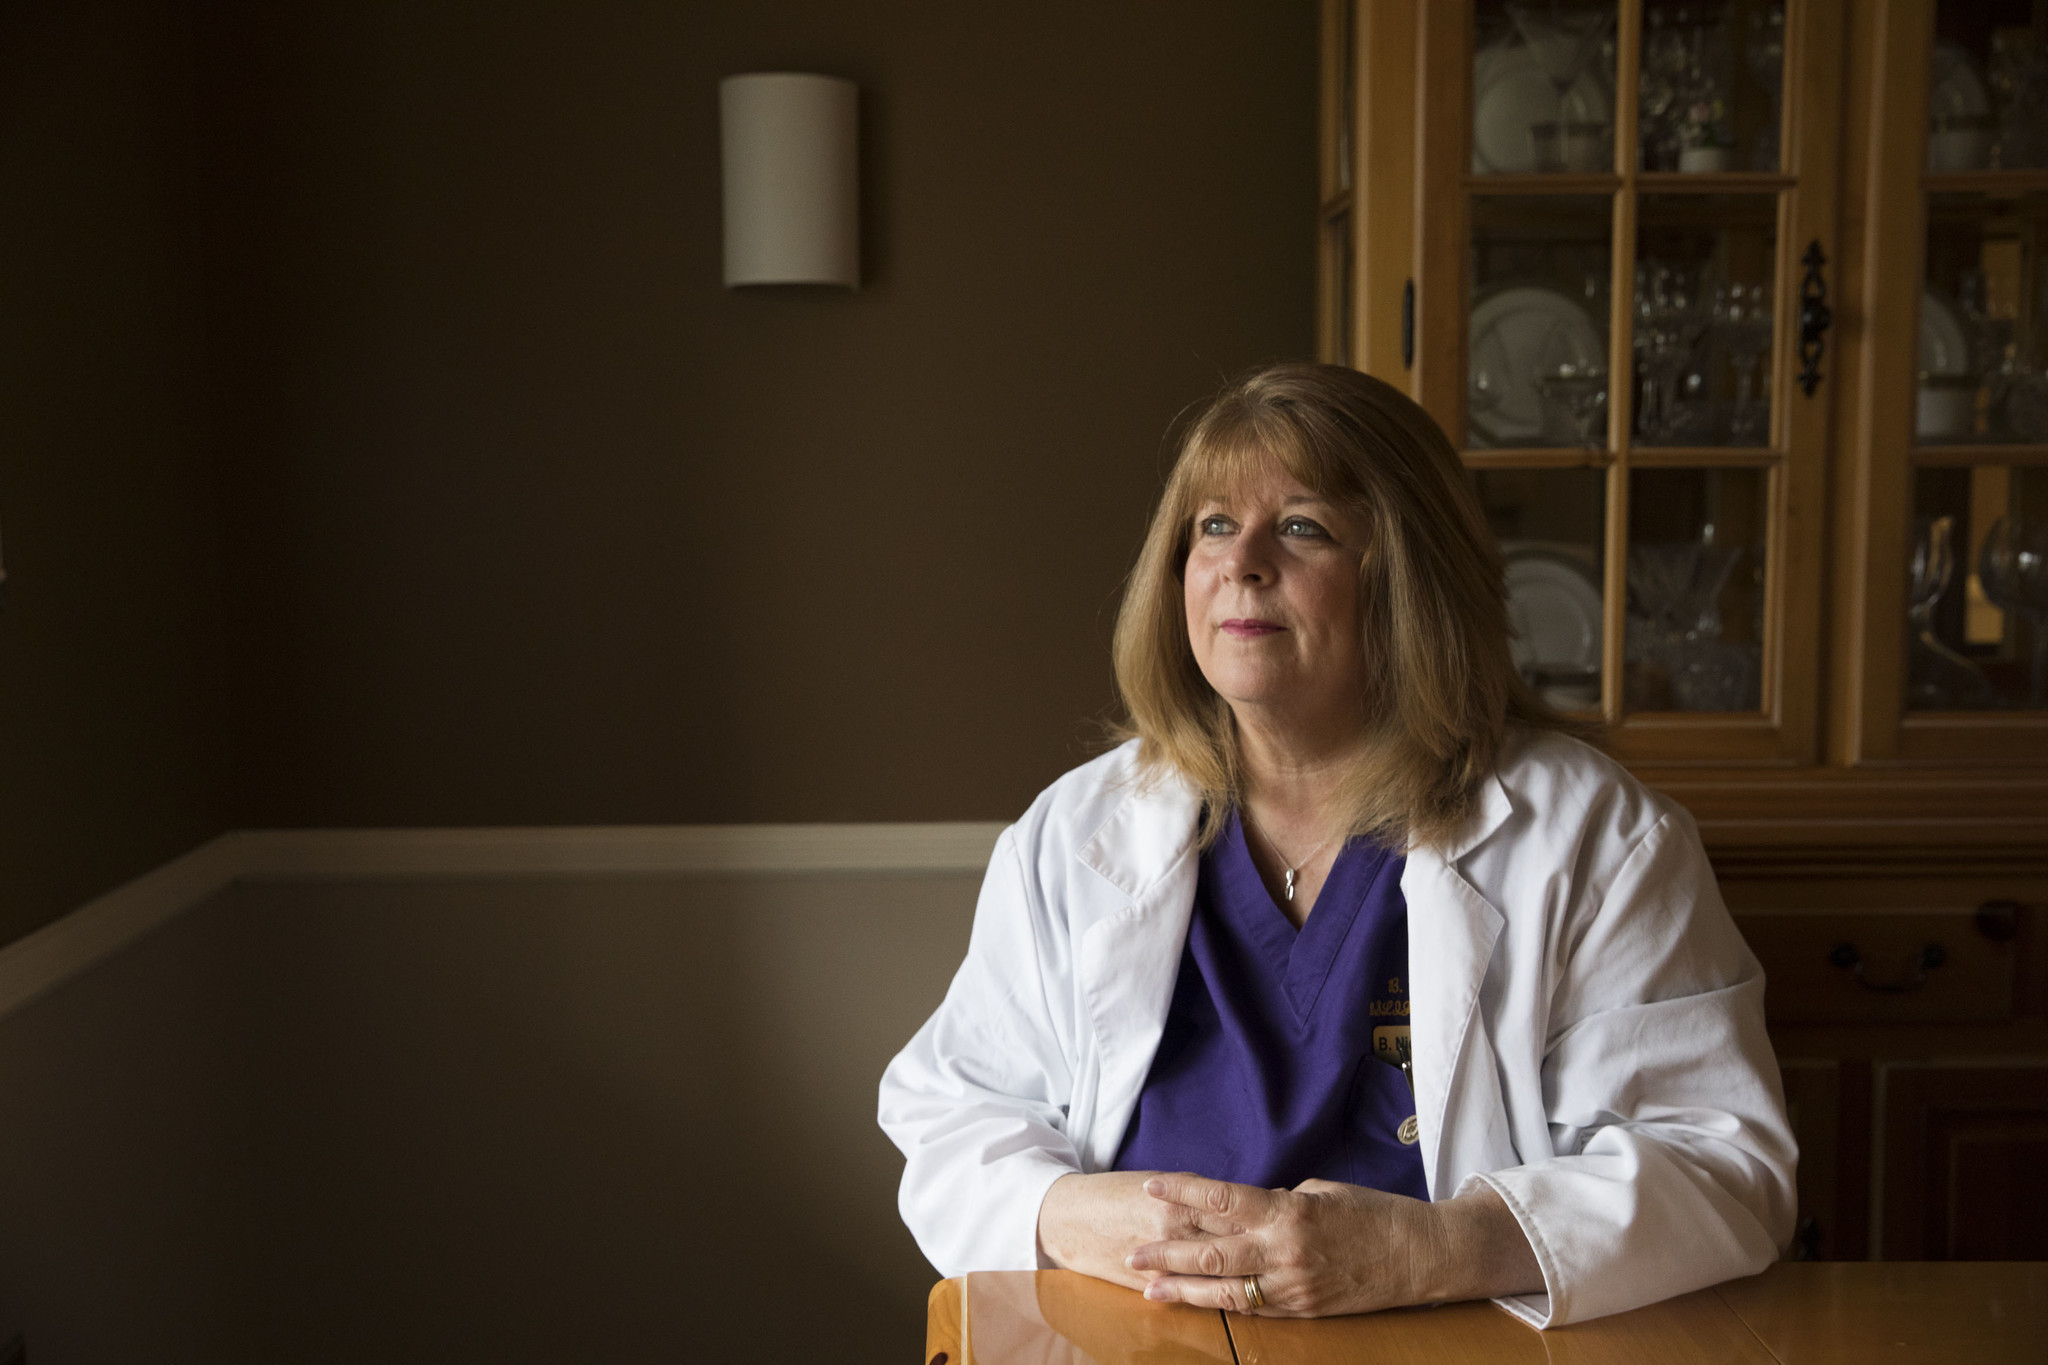 Breast cancer prevention: How to reduce your risk - Mayo ...